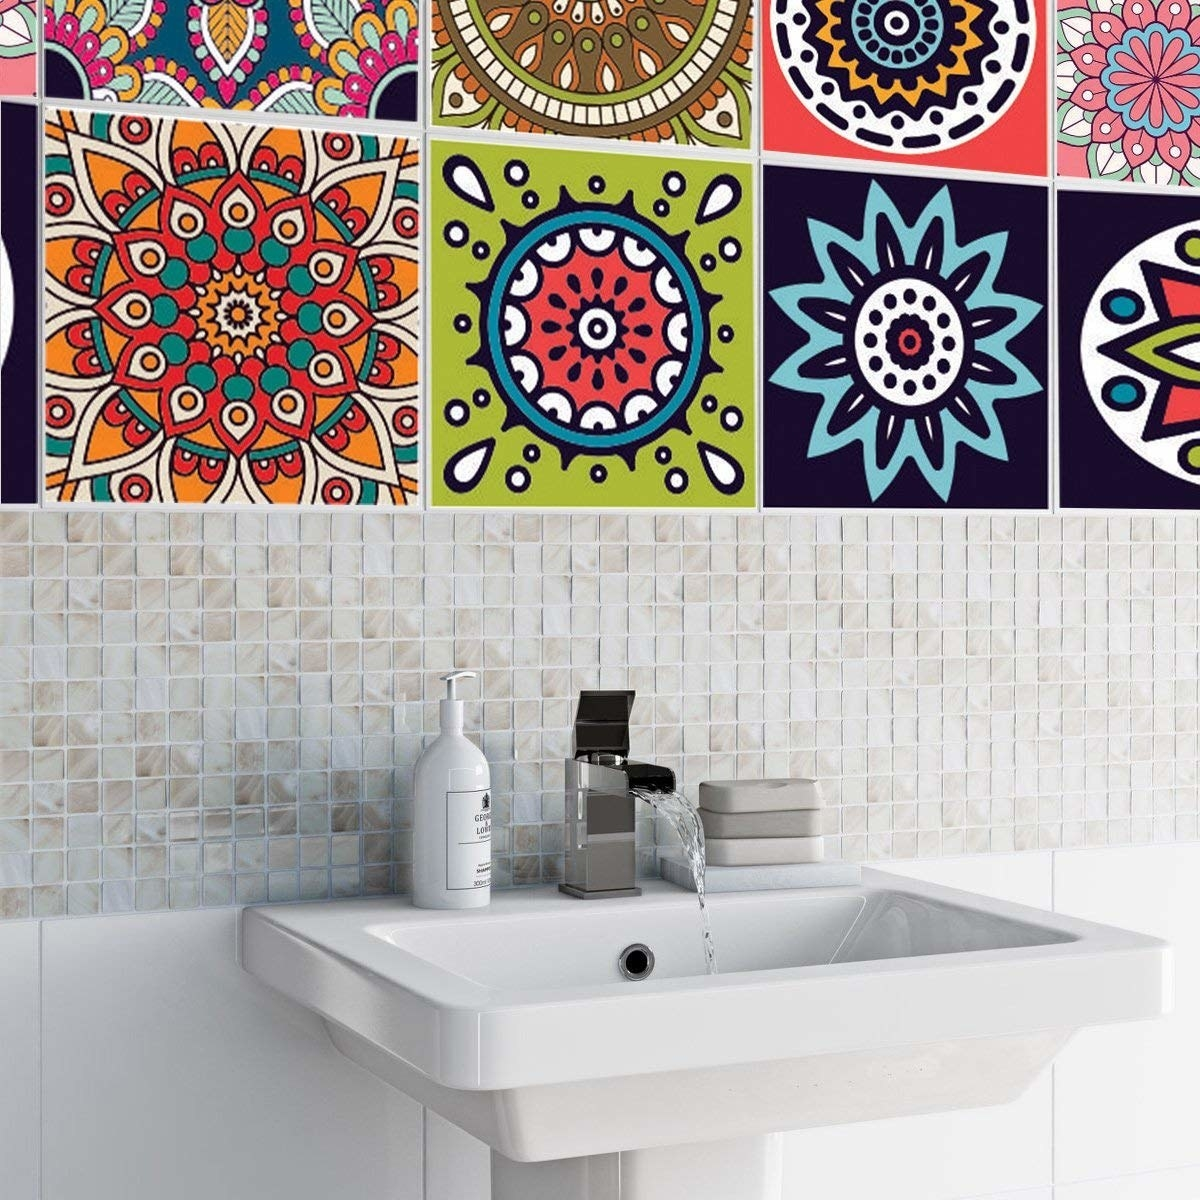 Tile stickers next to a sink